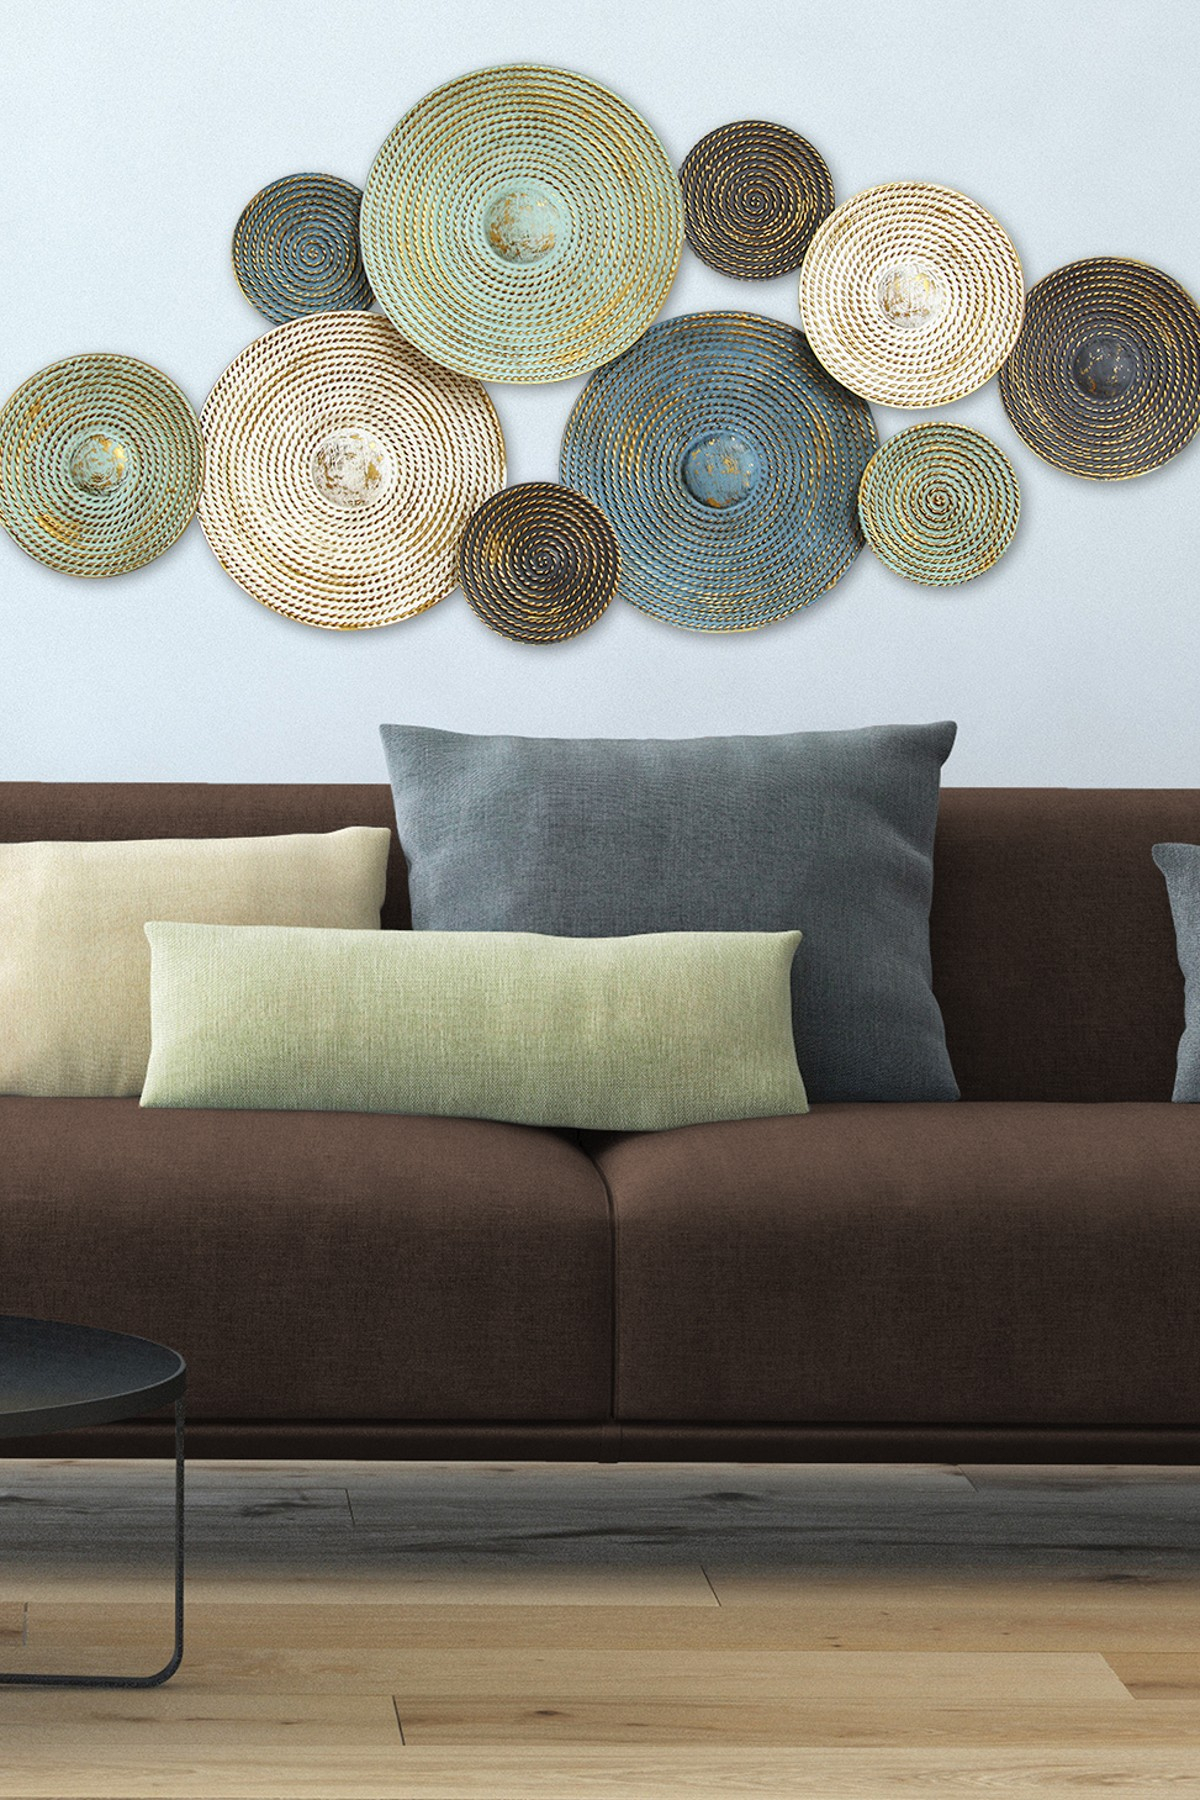 Stratton Home | Multi Asheville Textured Plates Wall Decor | Hautelook pertaining to Multi Plates Wall Decor (Image 26 of 30)